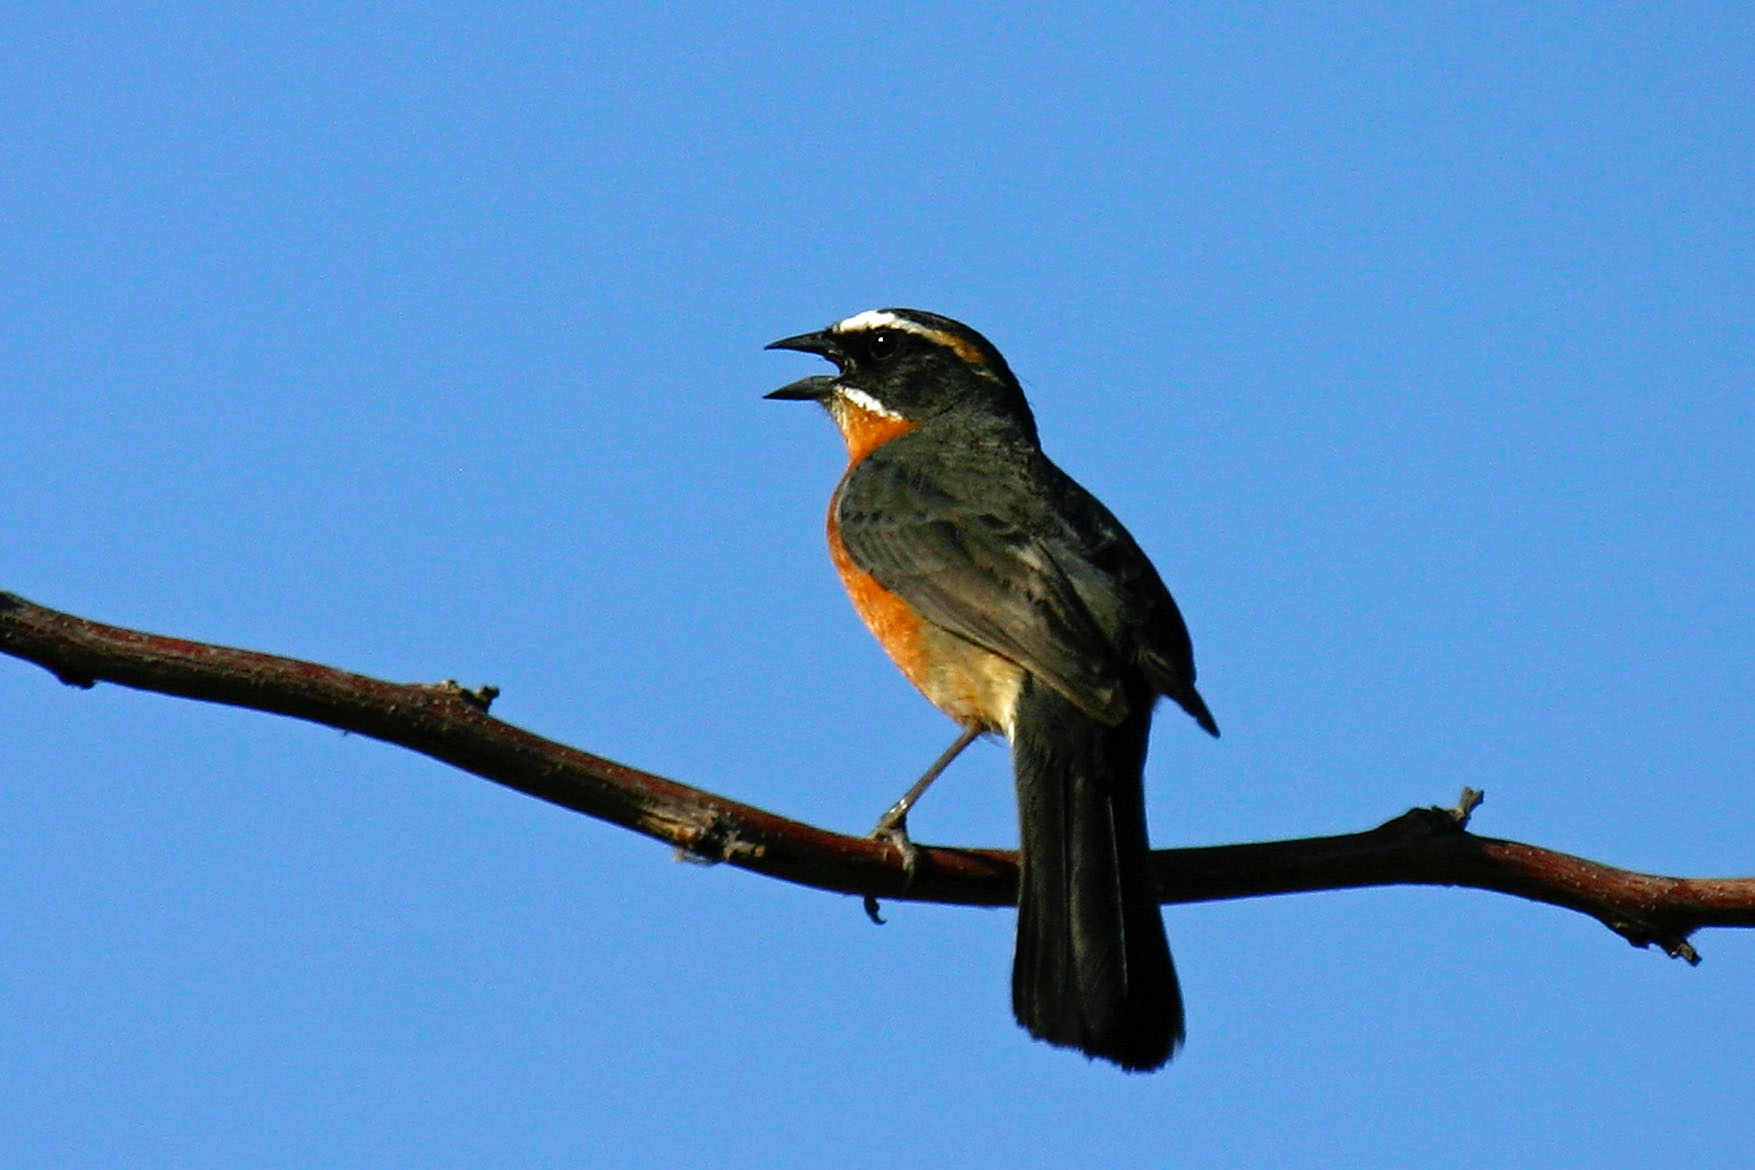 black-and-rufous warbling-finch